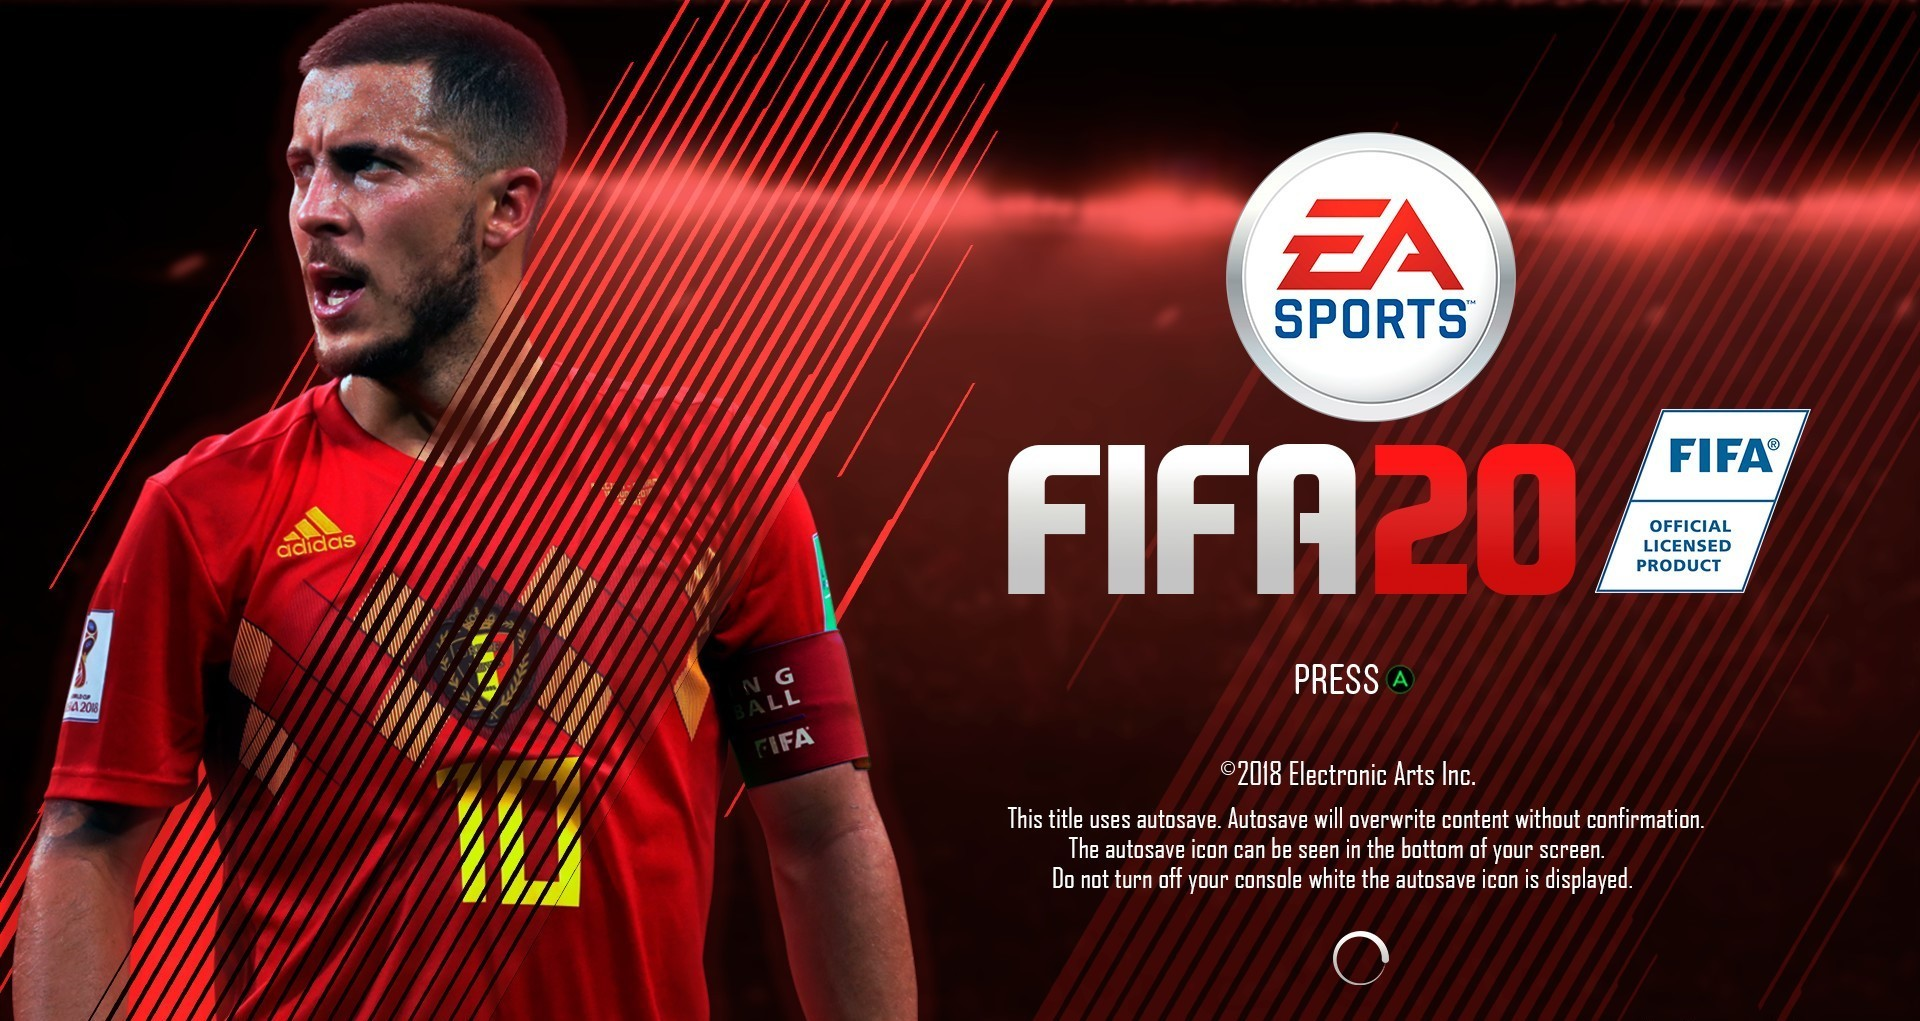 Eden Hazard FIFA 20 Wallpaper